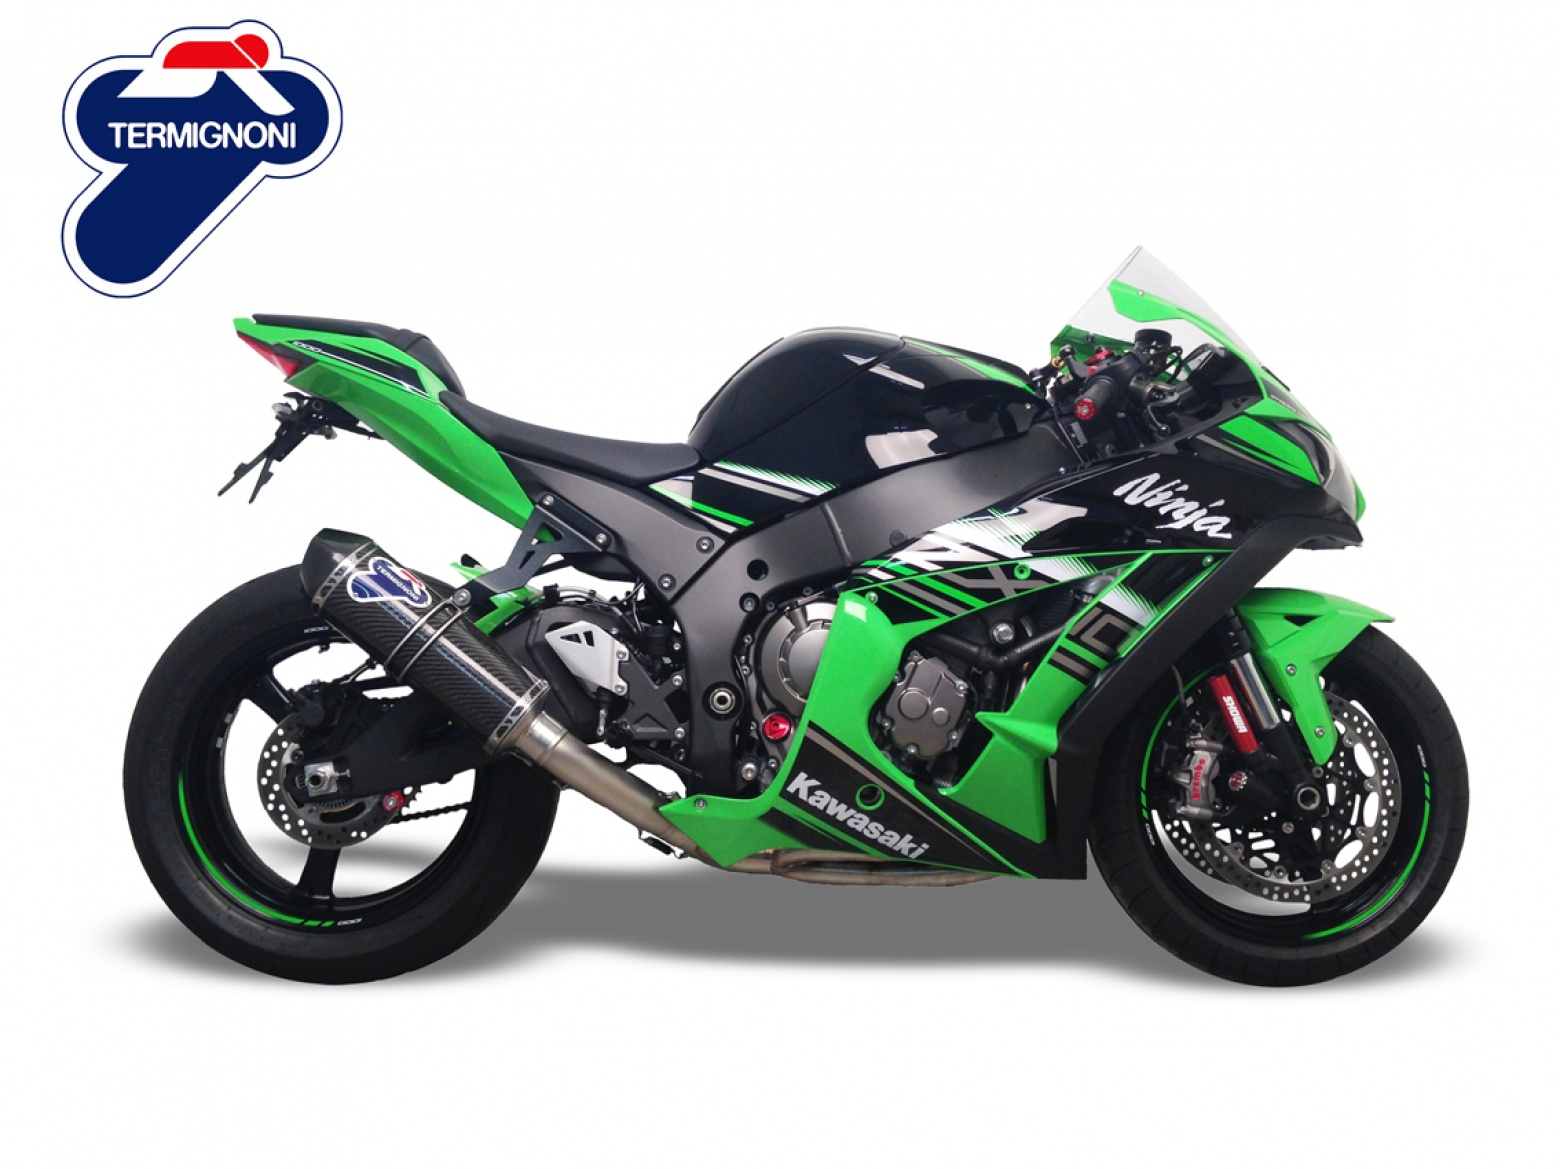 termignoni kawasaki zx10r relevance inox carbon exhaust system. Black Bedroom Furniture Sets. Home Design Ideas